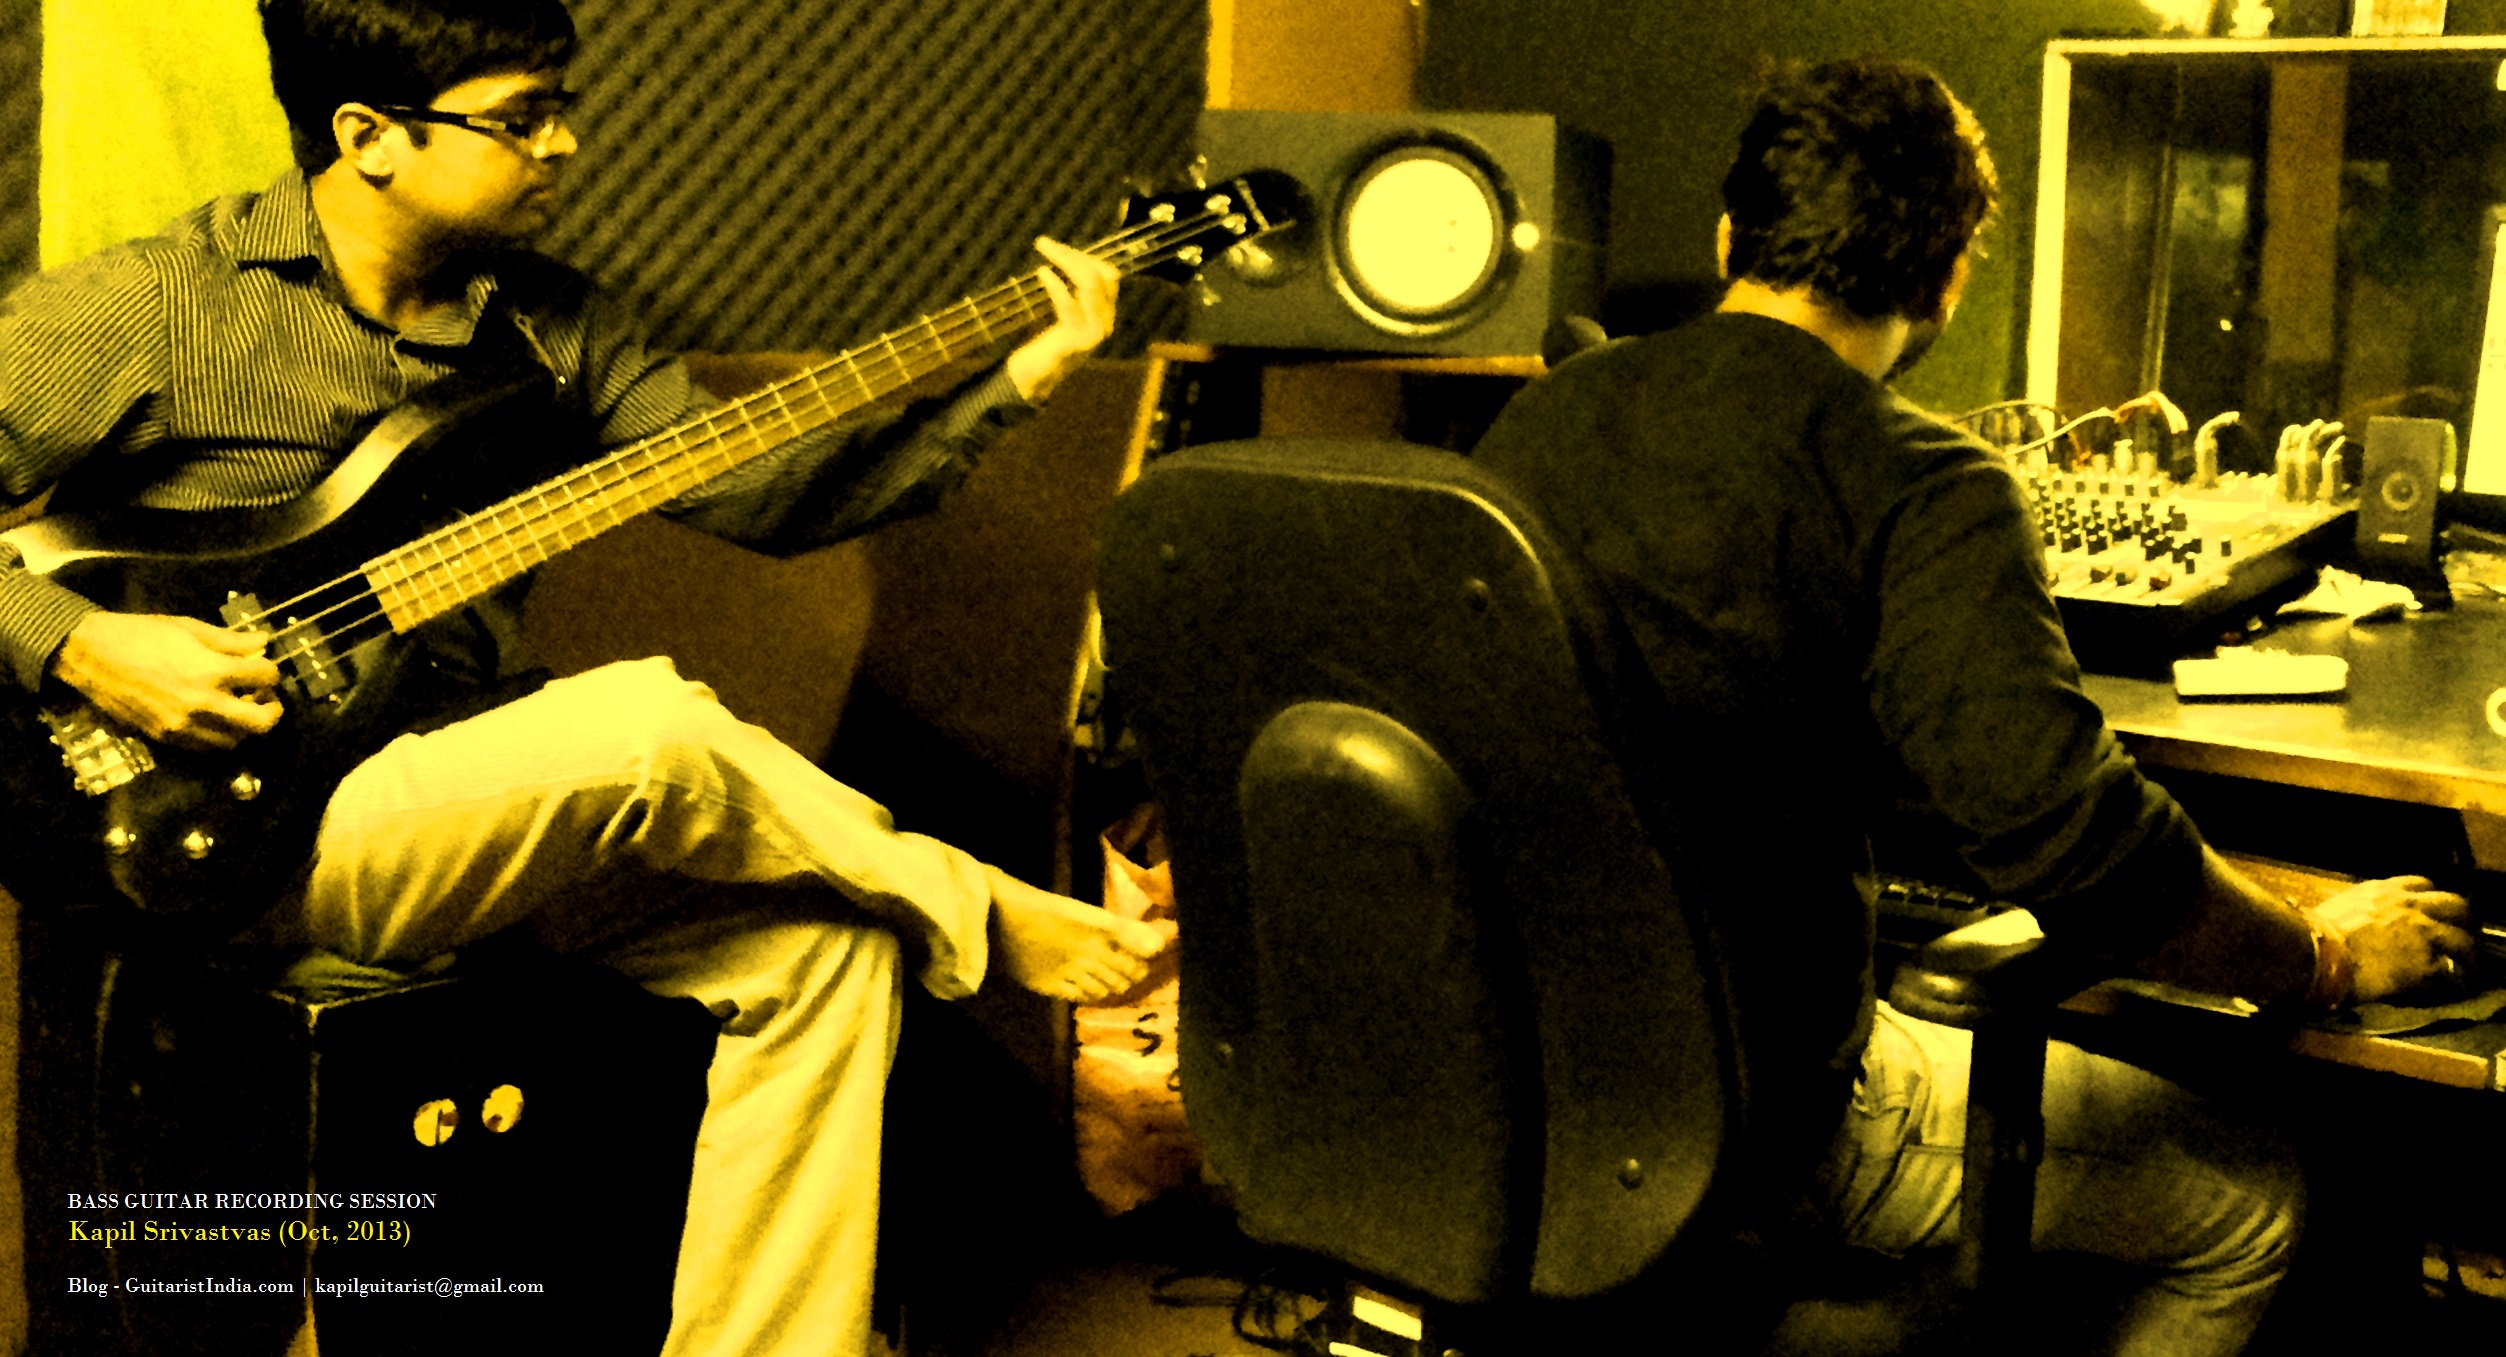 213_Recording Session (14 Oct 2013)